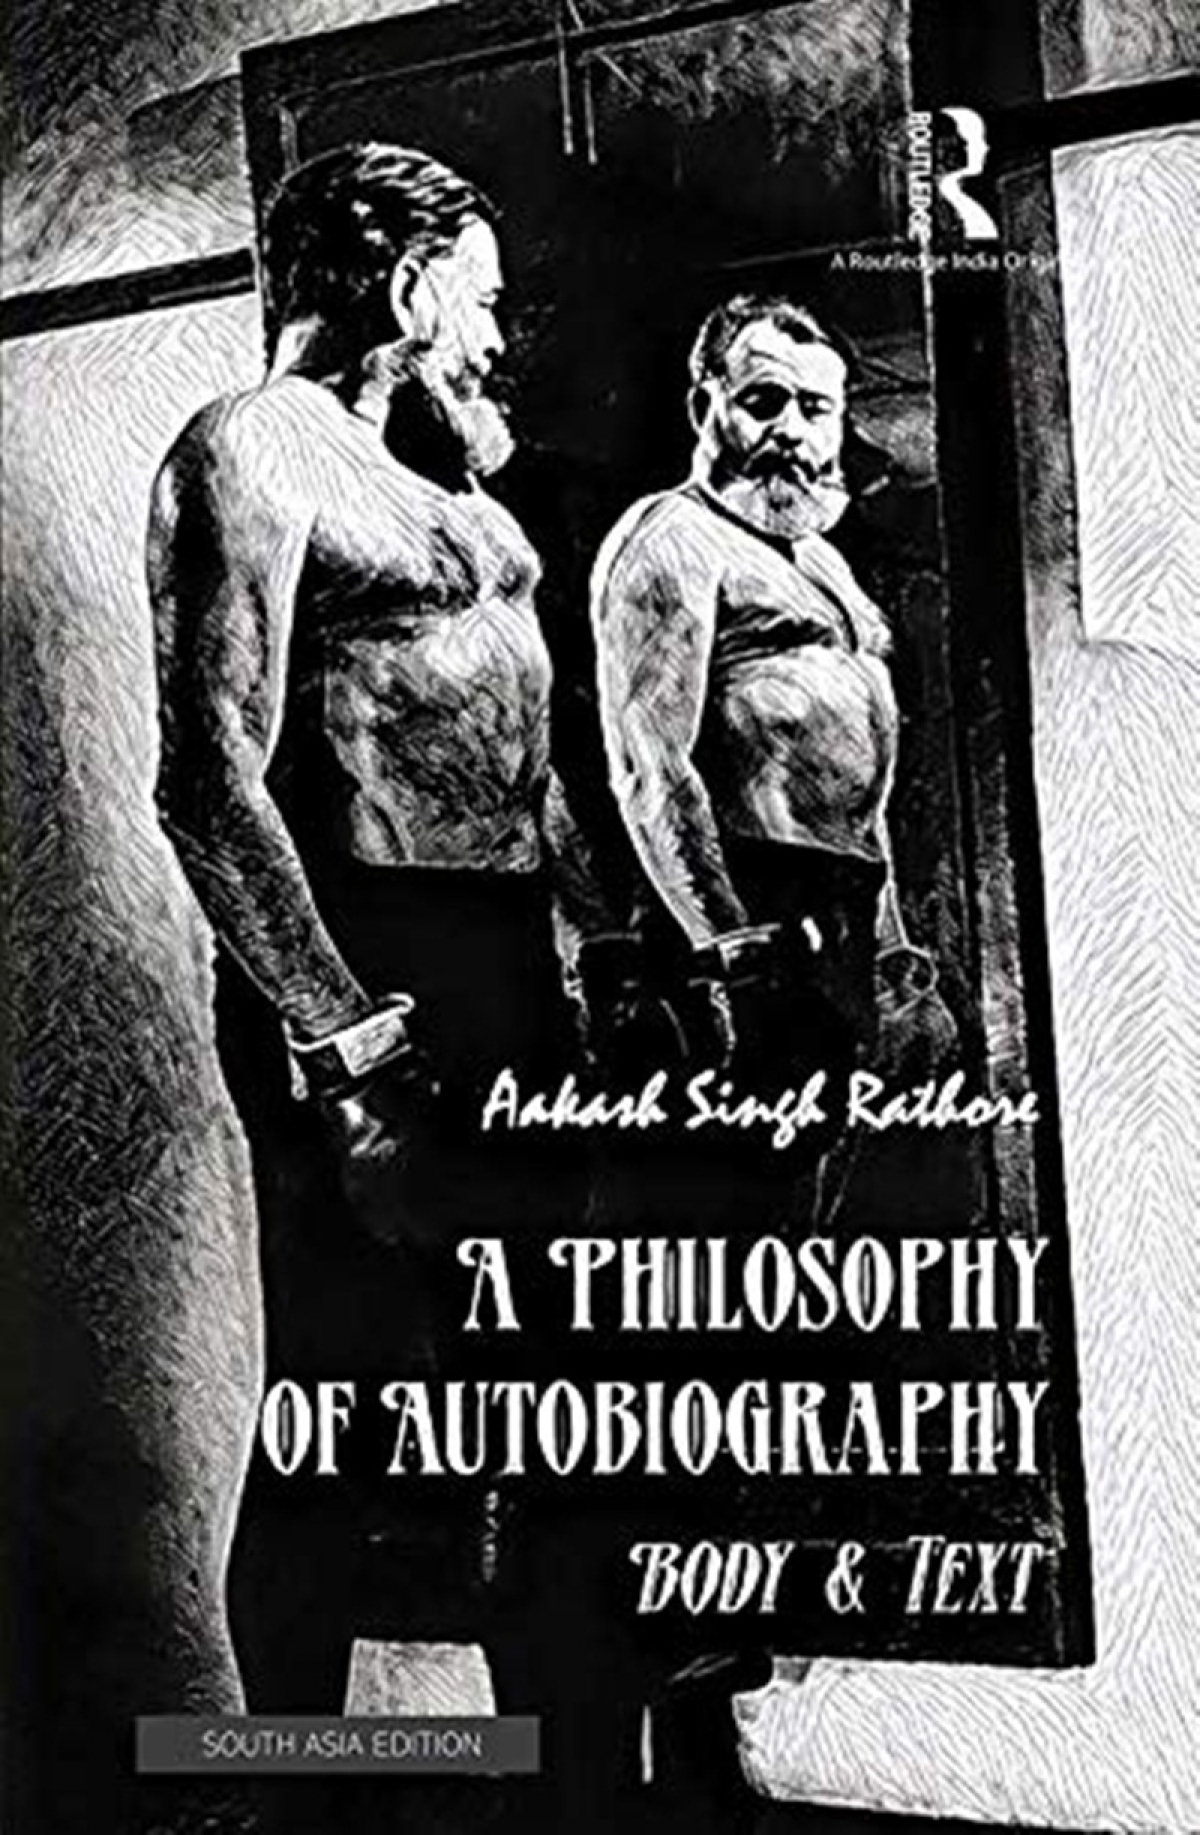 A Philosophy of Autobiography, Body and Text by Aakash Singh Rathore: Review